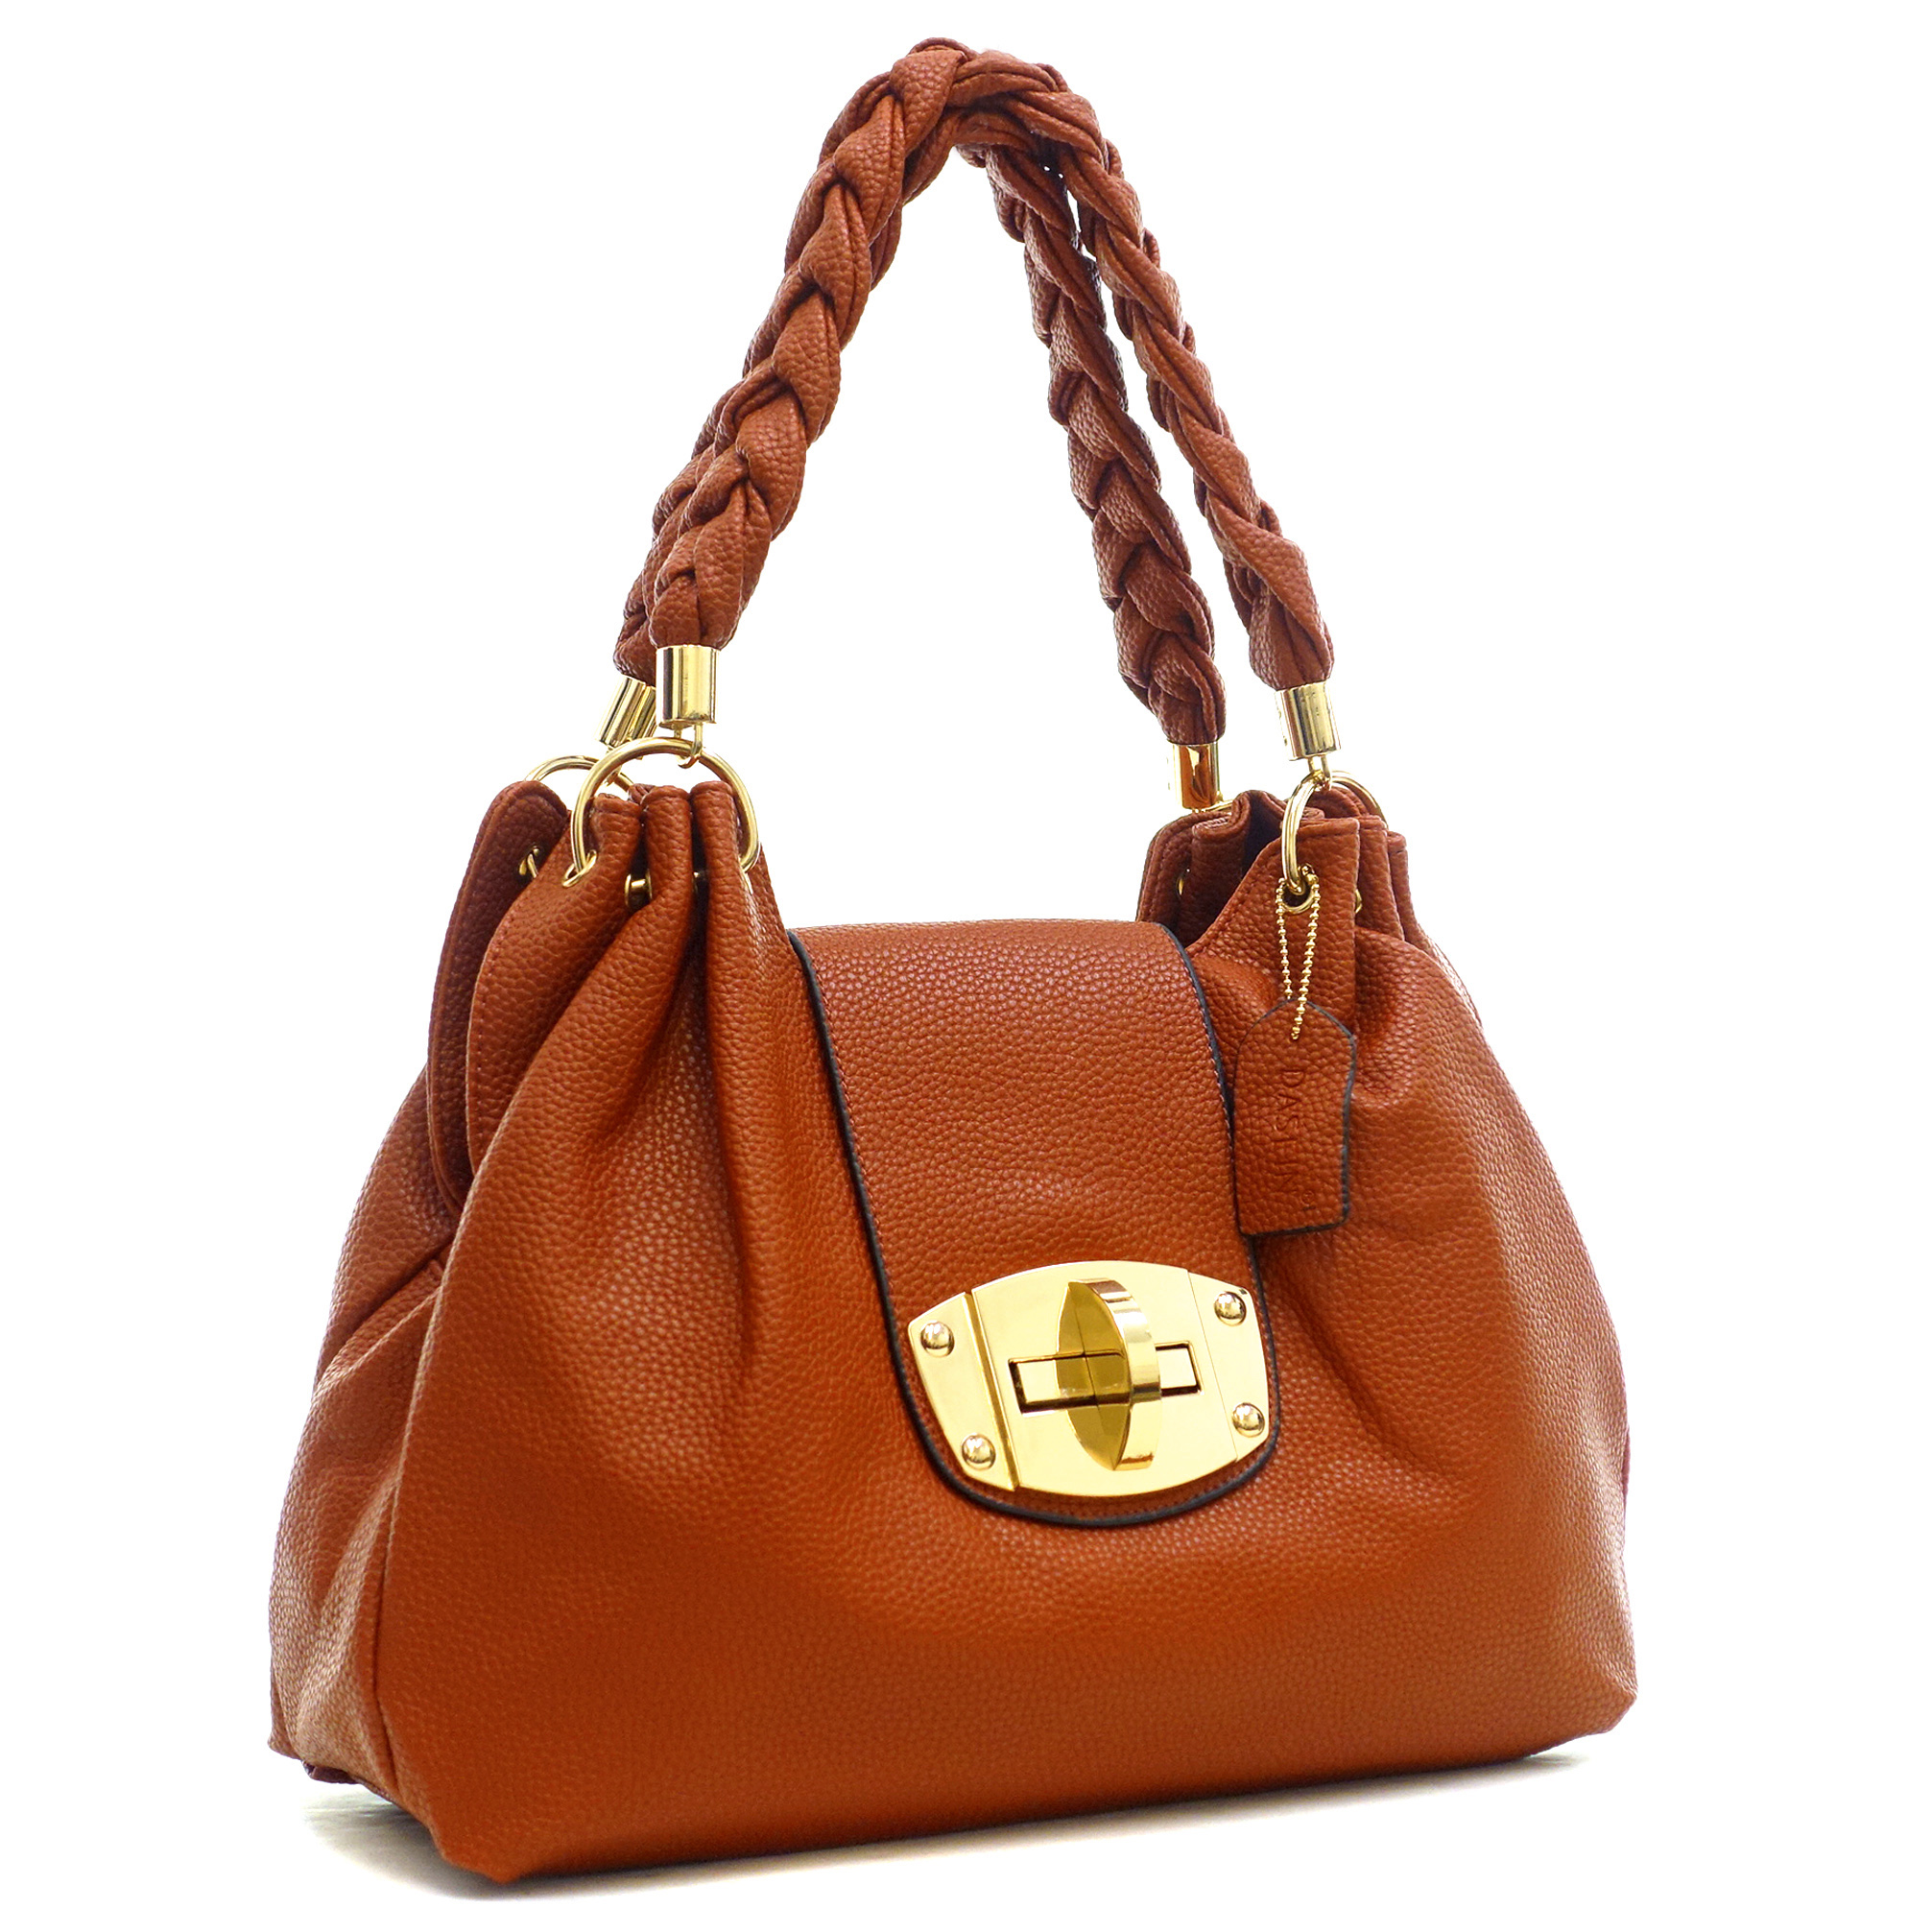 Dasein Buffalo Leather Hobo Bag with Braided Shoulder Straps